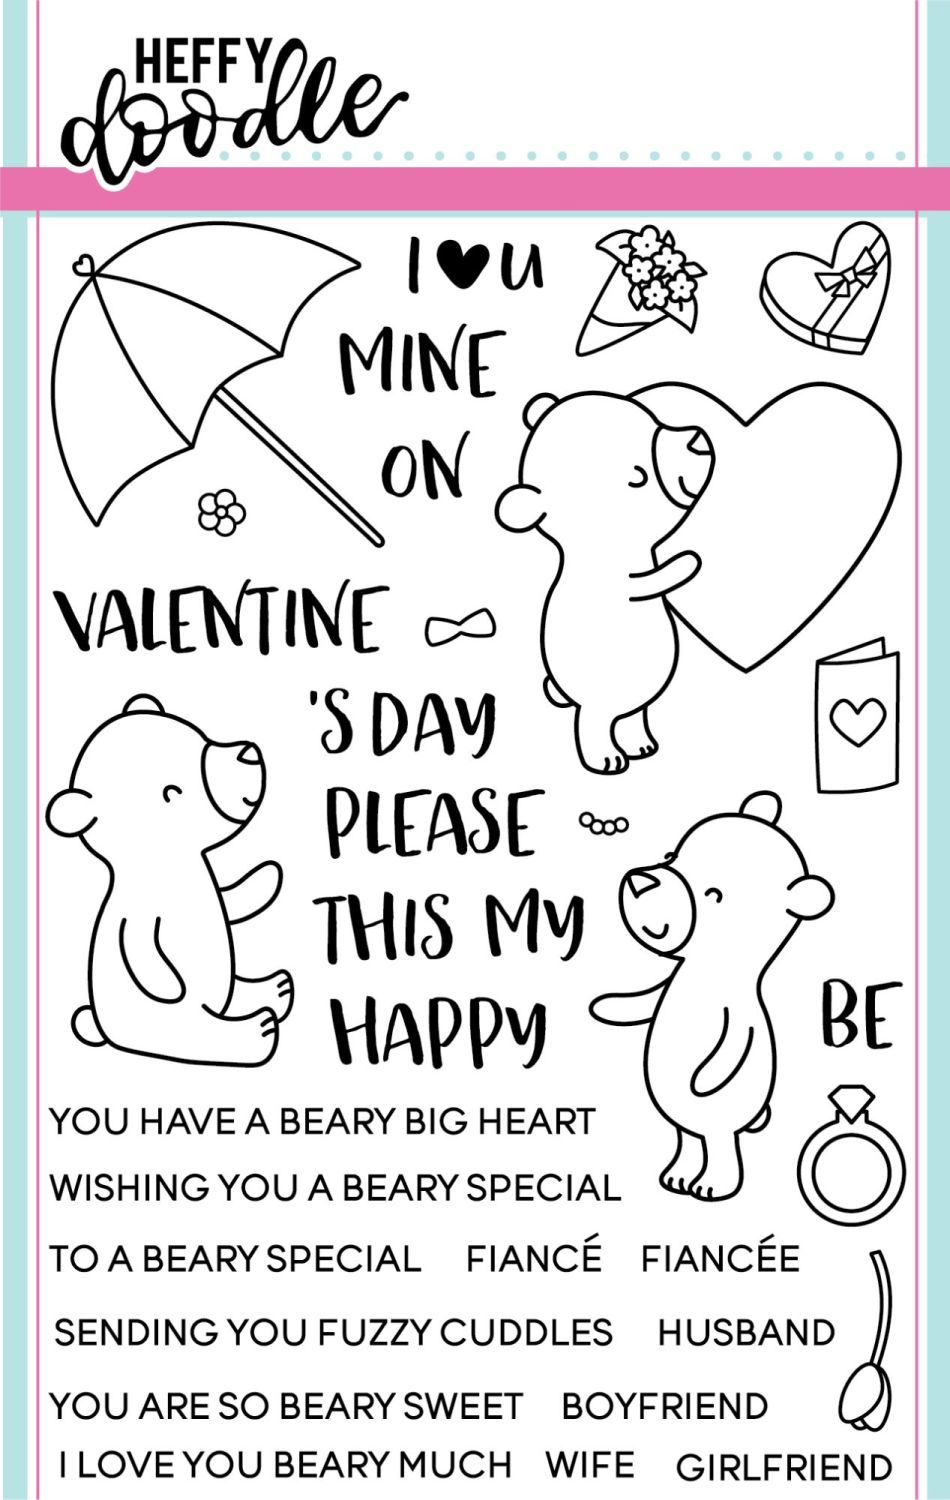 Heffy Doodle - Beary big heart clear stamps